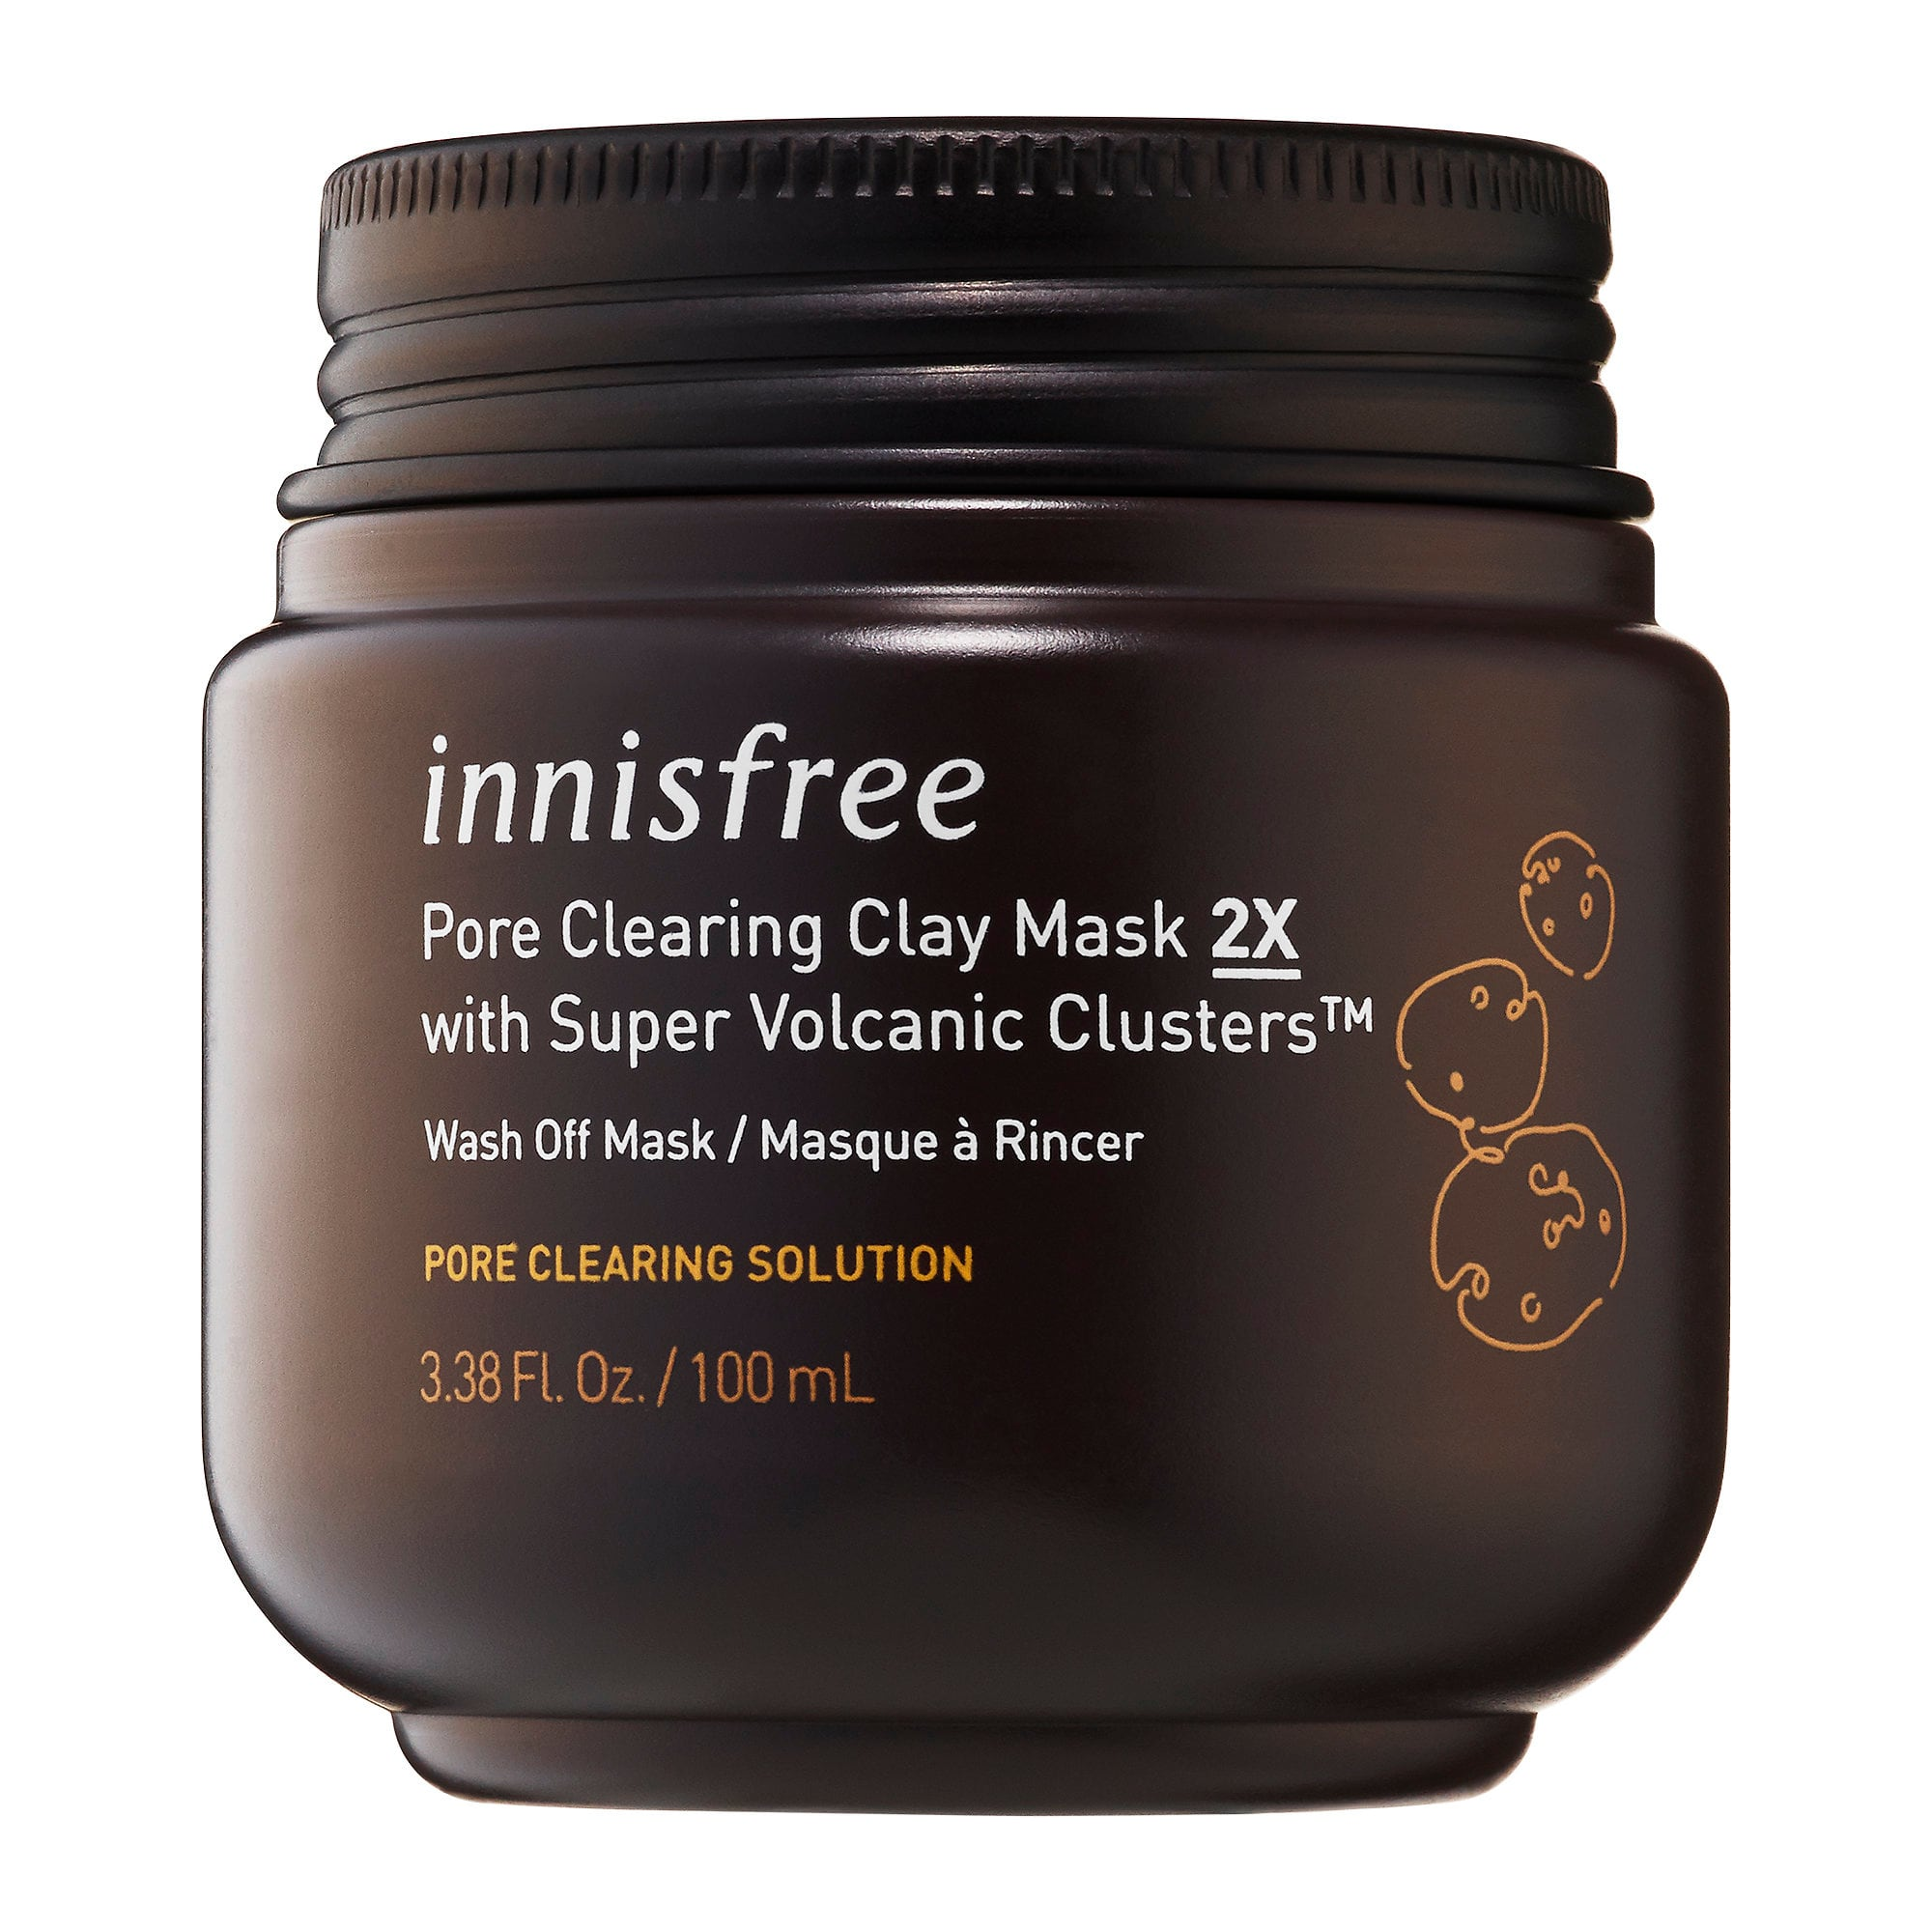 innisfree-Super Volcanic Clusters Pore Clearing Clay Mask